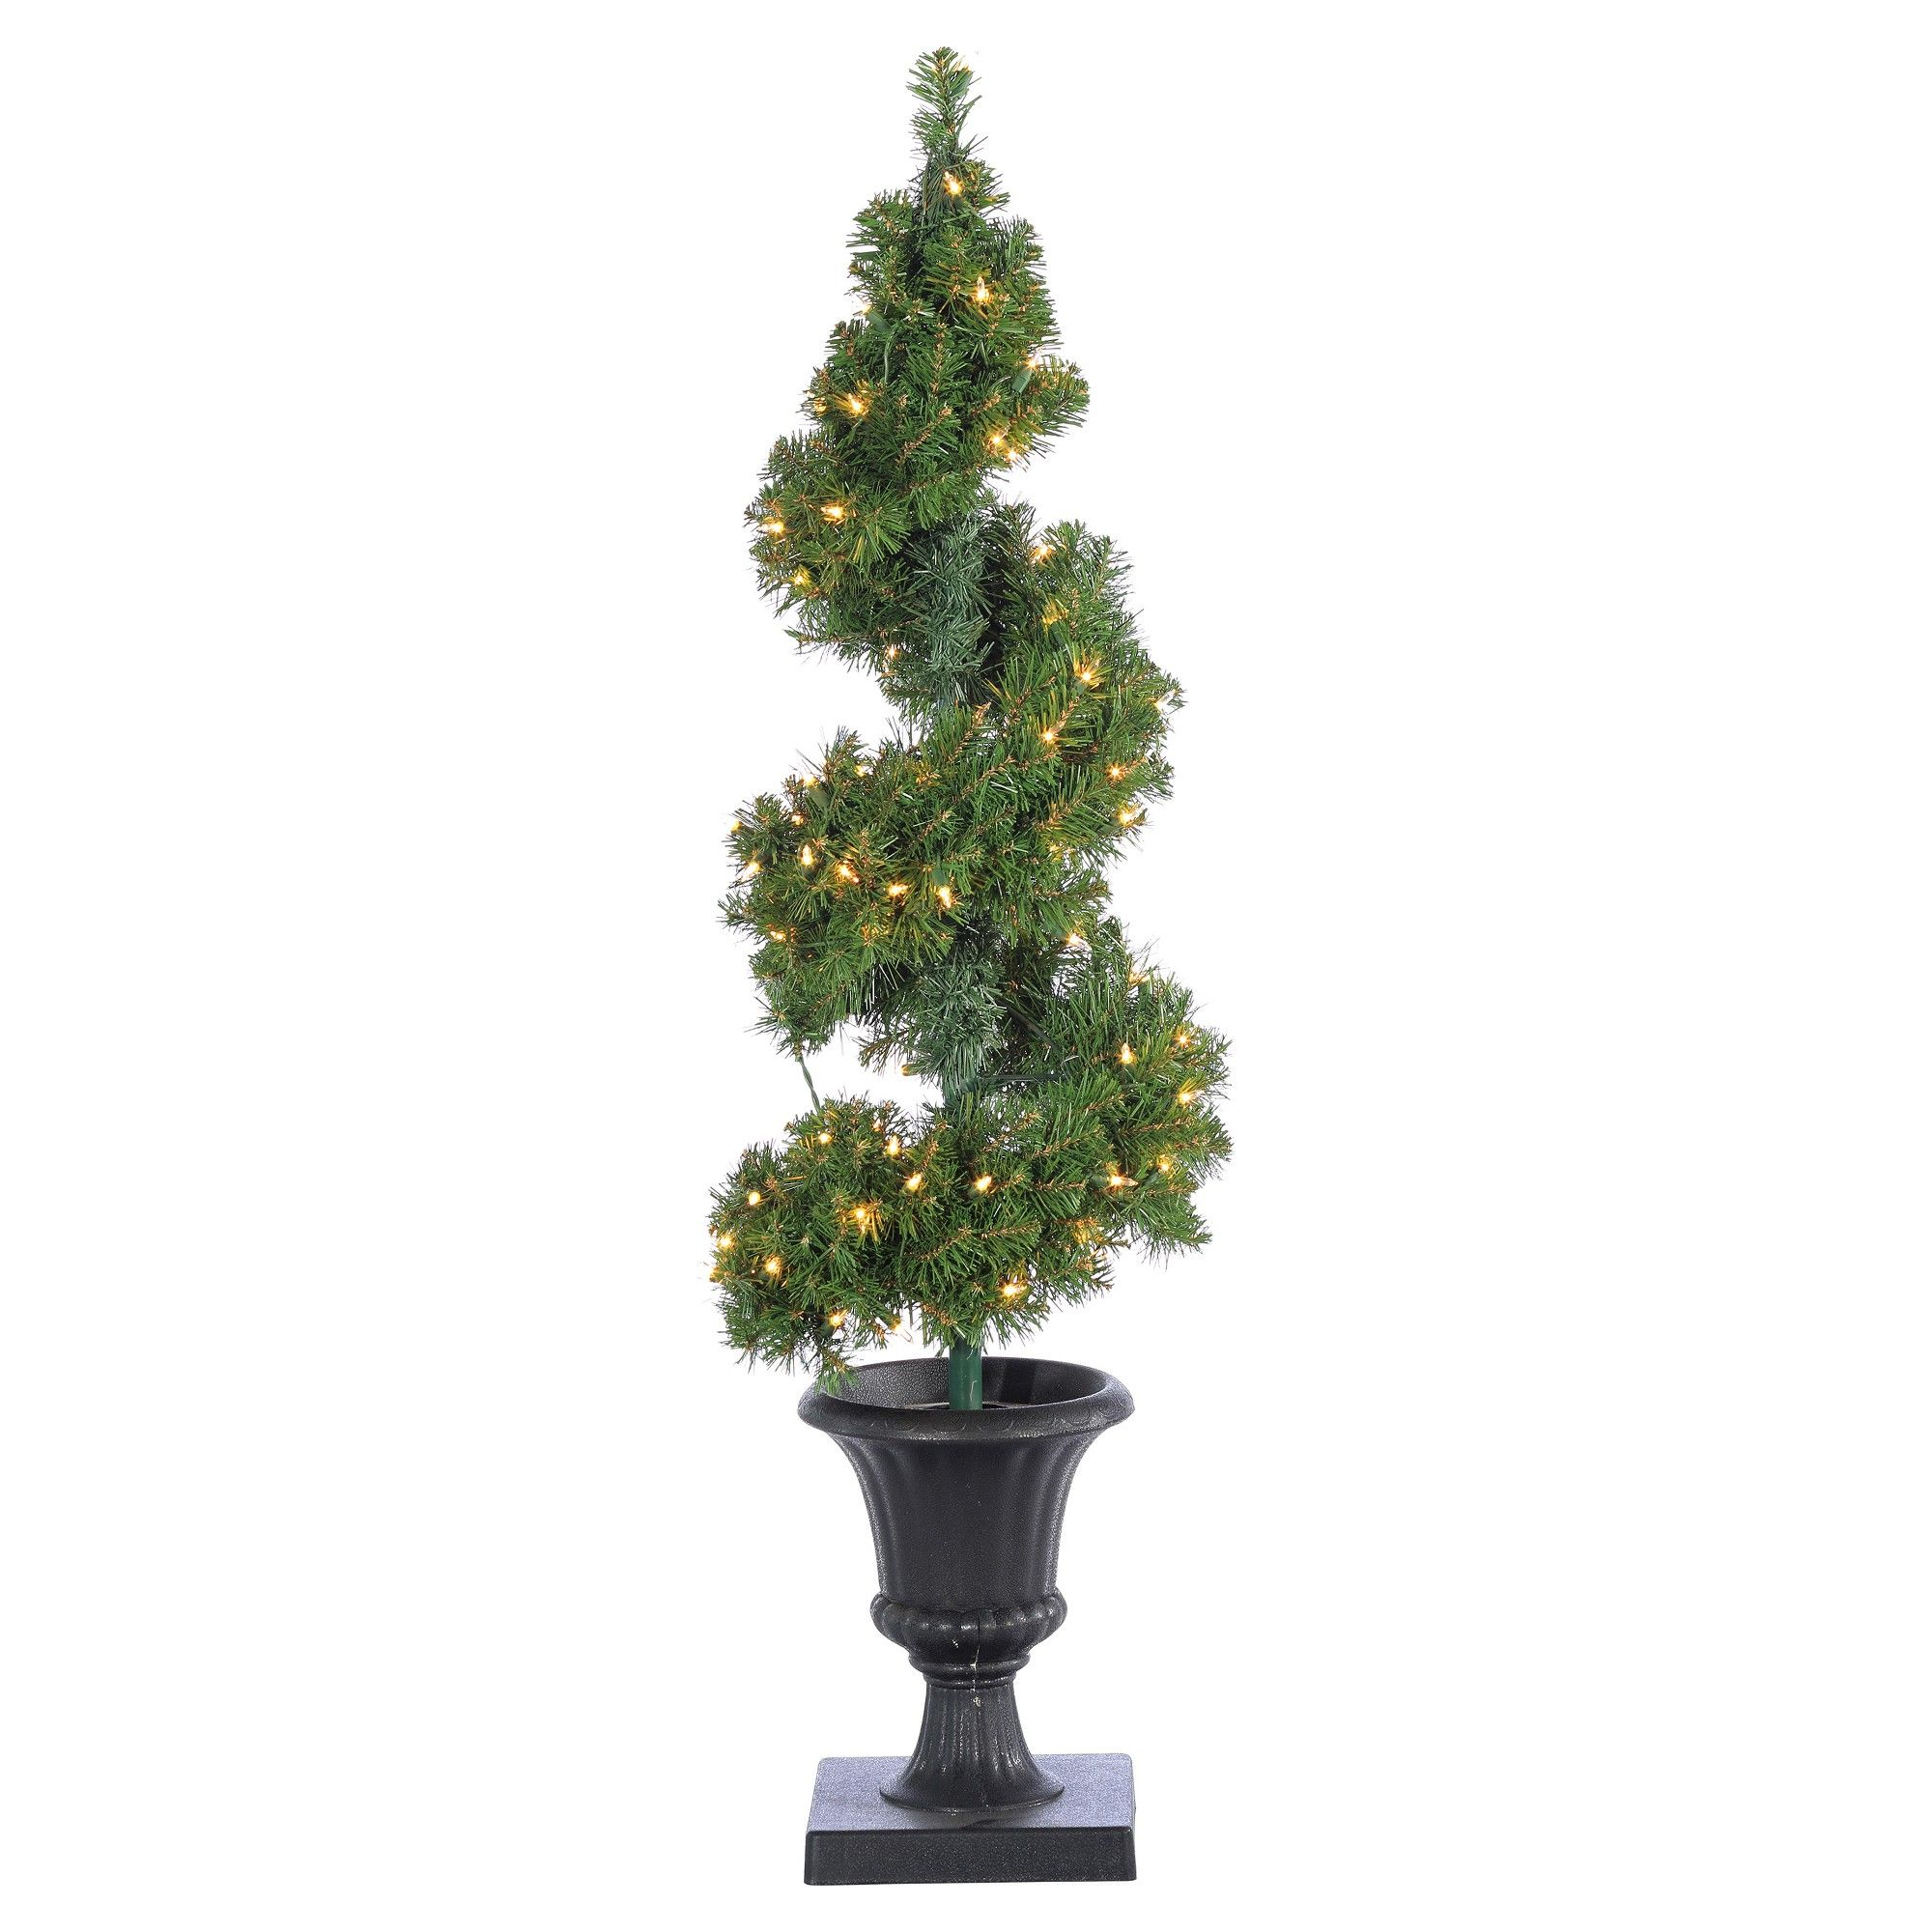 4ft PreLit Artificial Christmas Tree Potted Spiral Tree